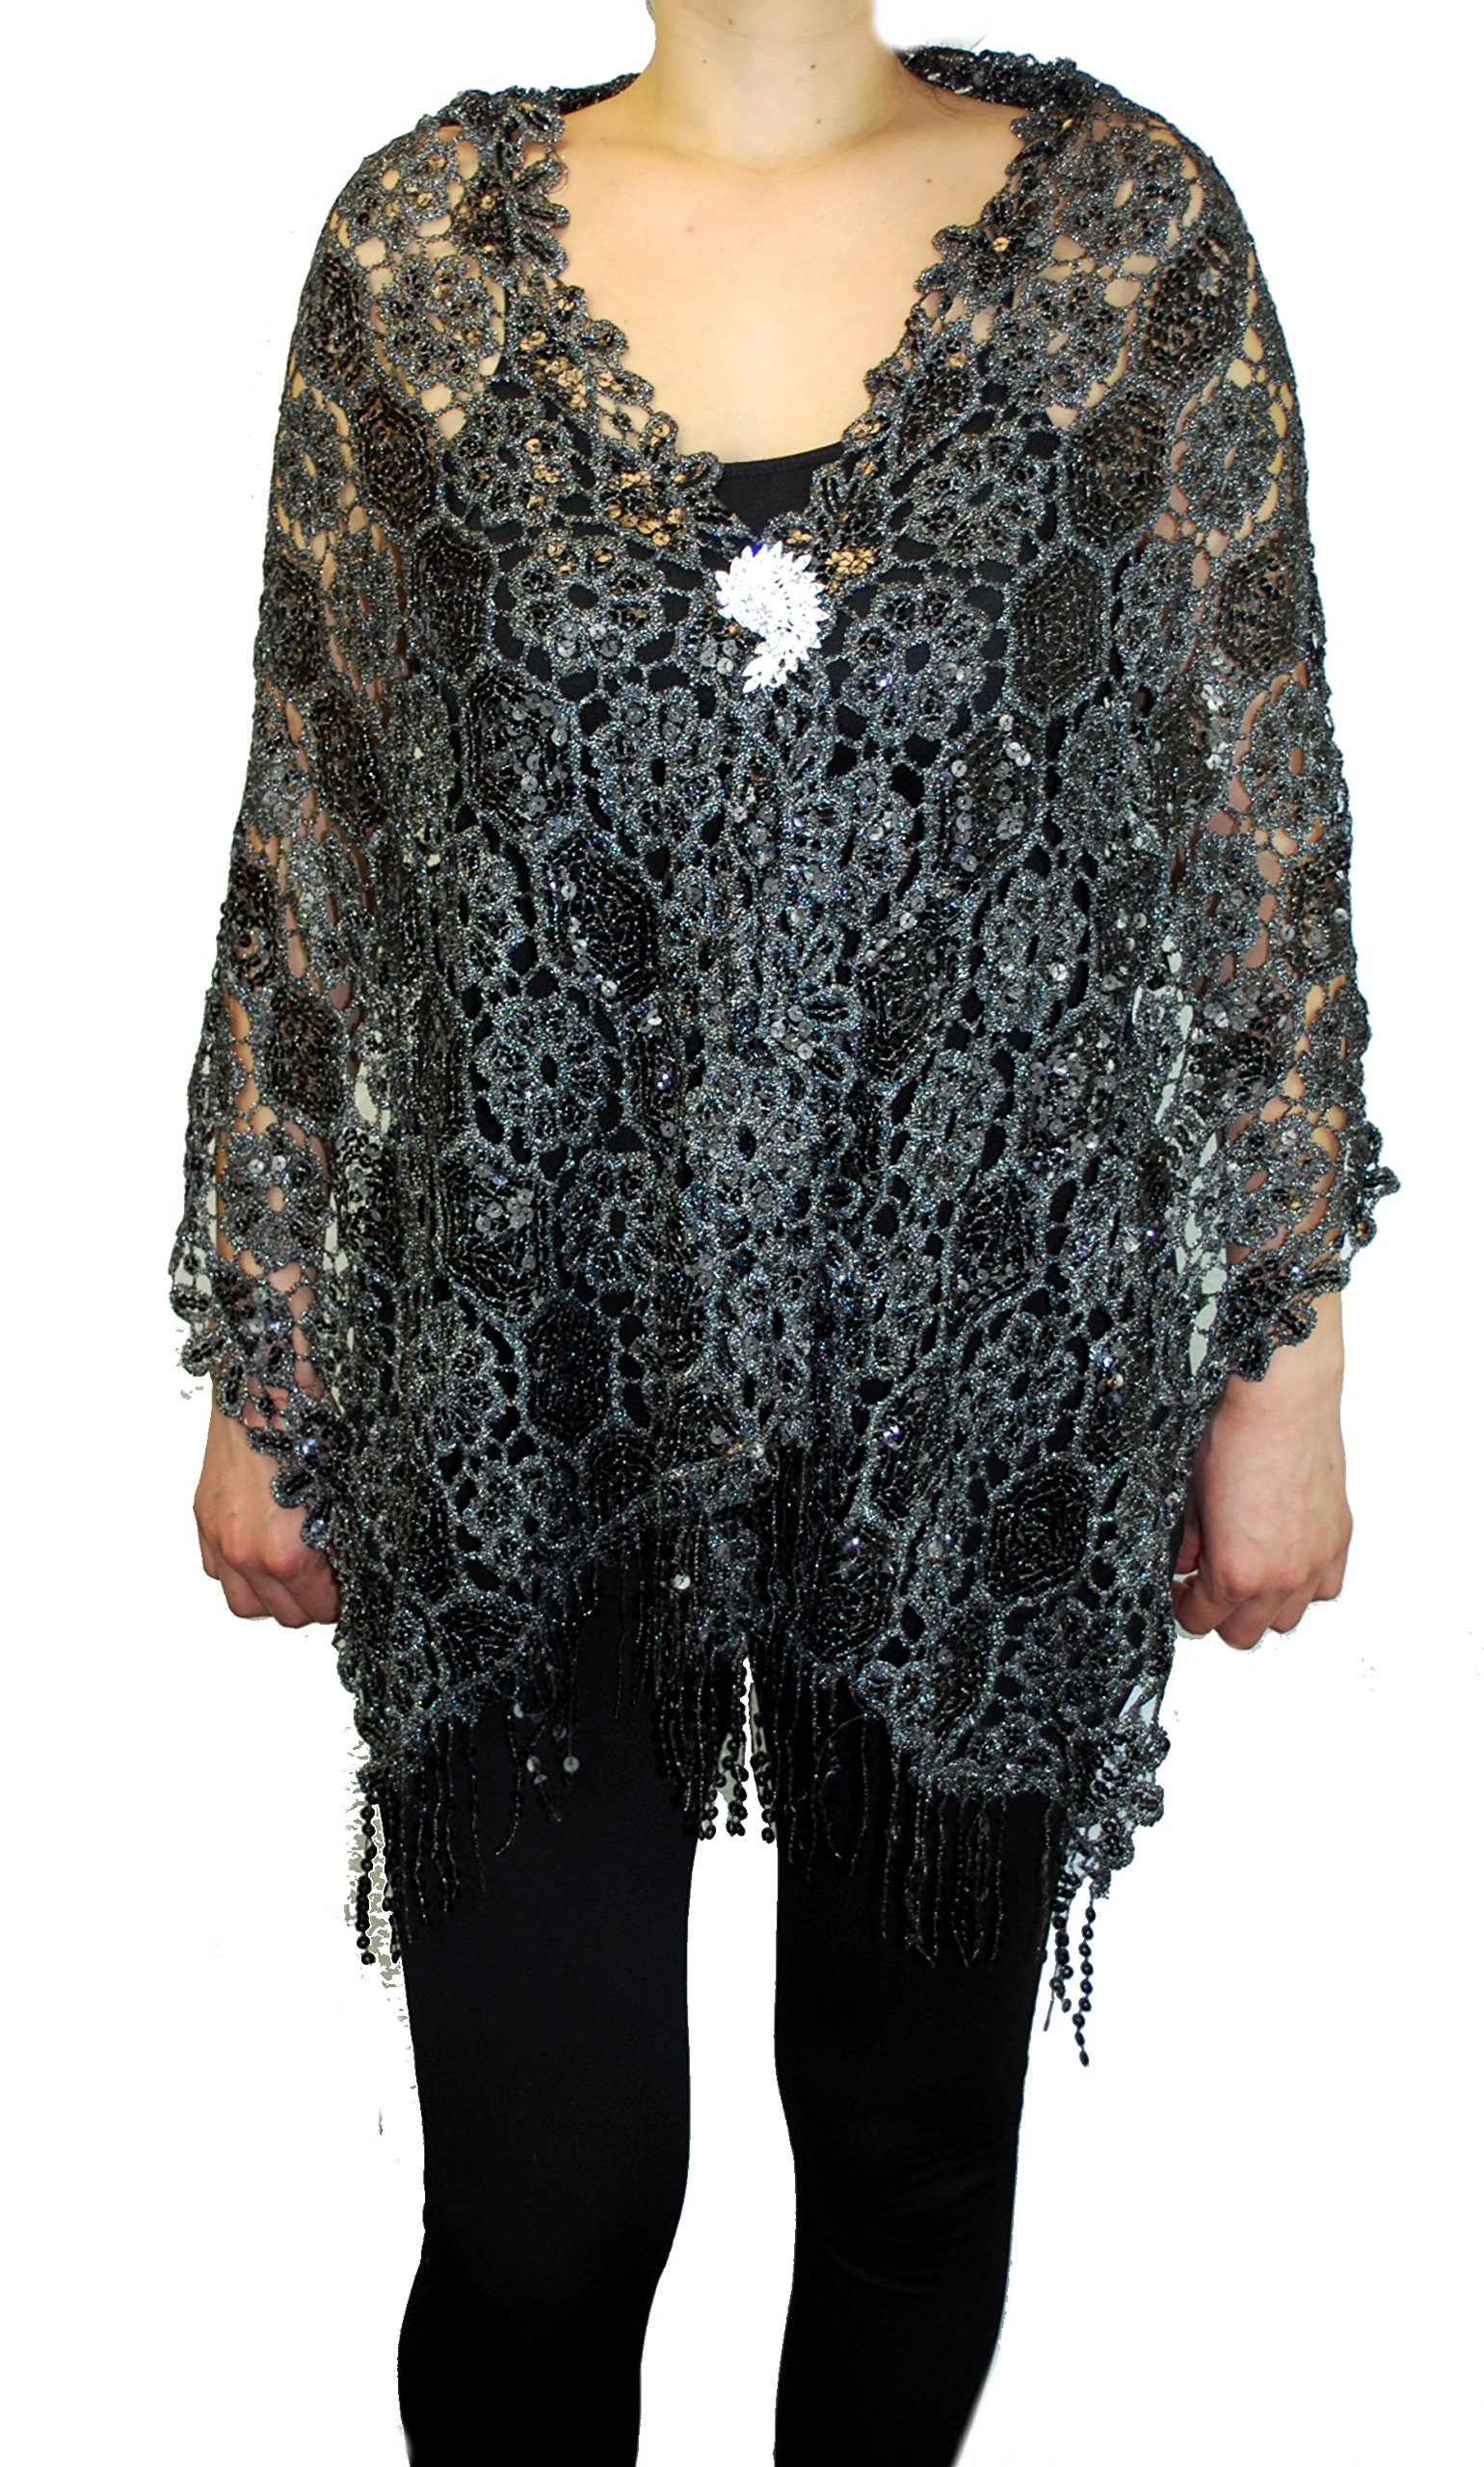 Love My Seamless Mother Of Bride Fashion 19'' x 62'' Sequins Beaded Embroidered Lace Shawl Scarf With Brooch Cover up Evening Wrap Scarve (Black/Silver)